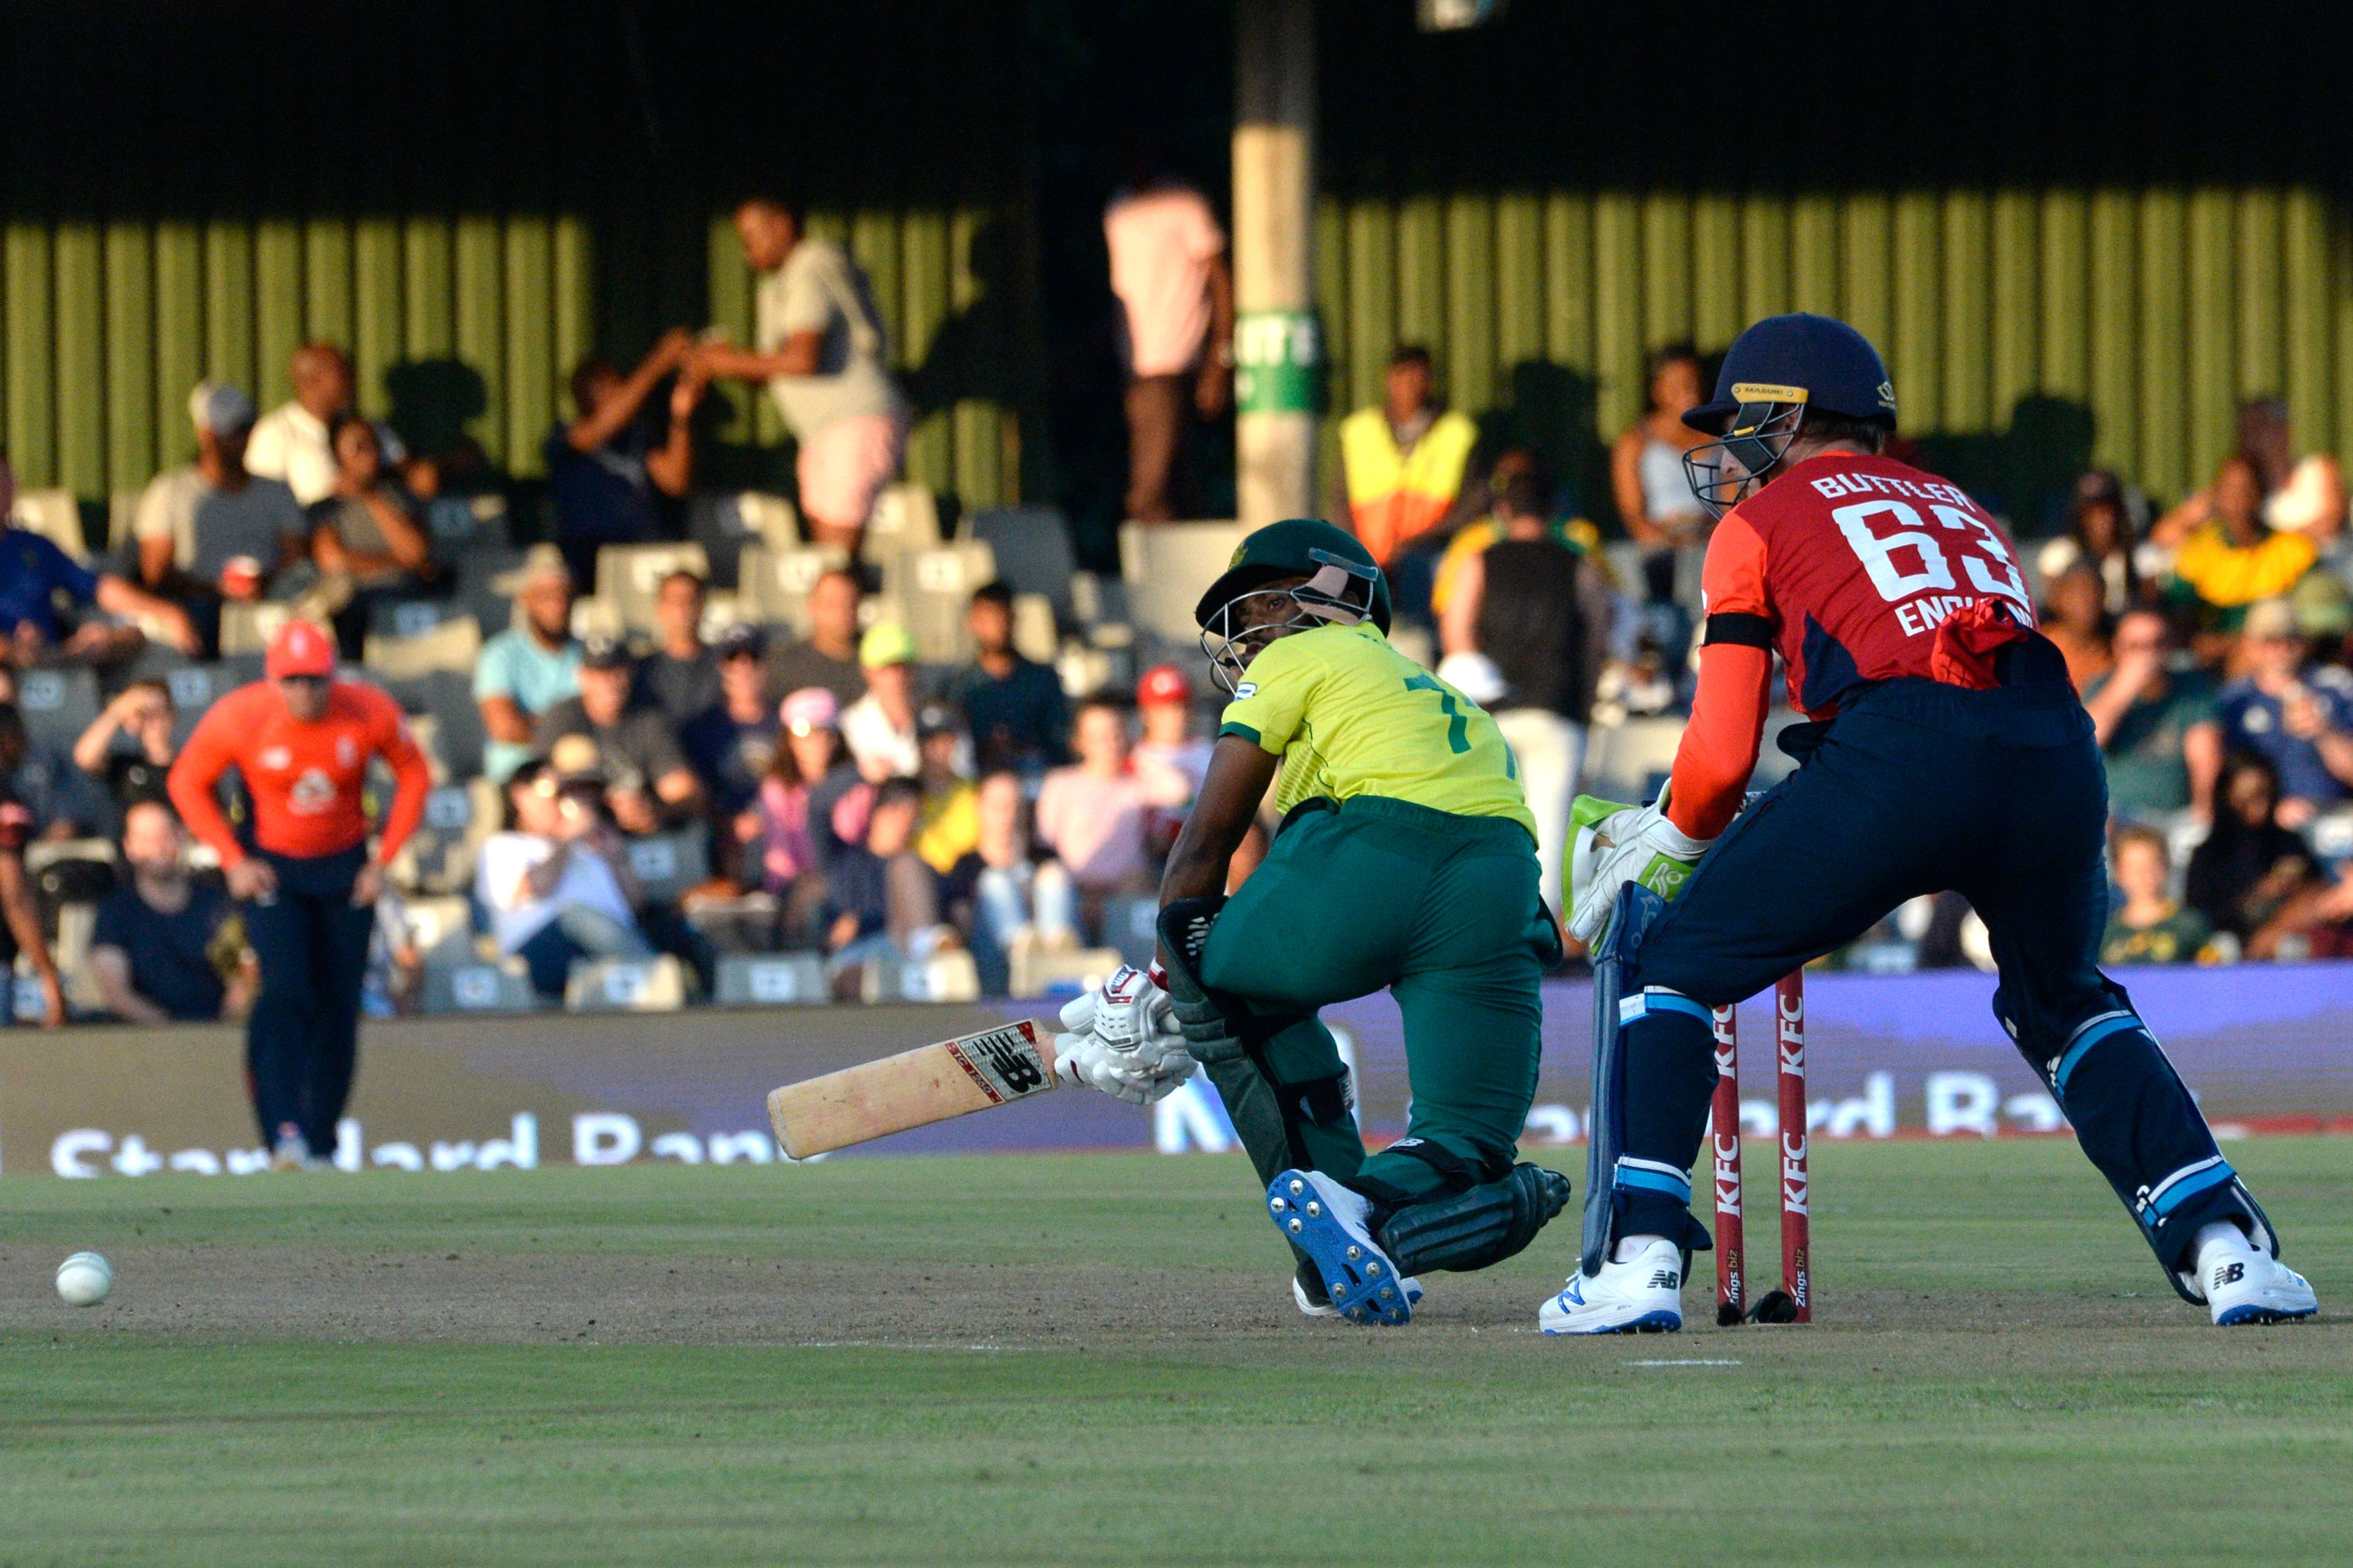 South Africa vs England T20 cricket